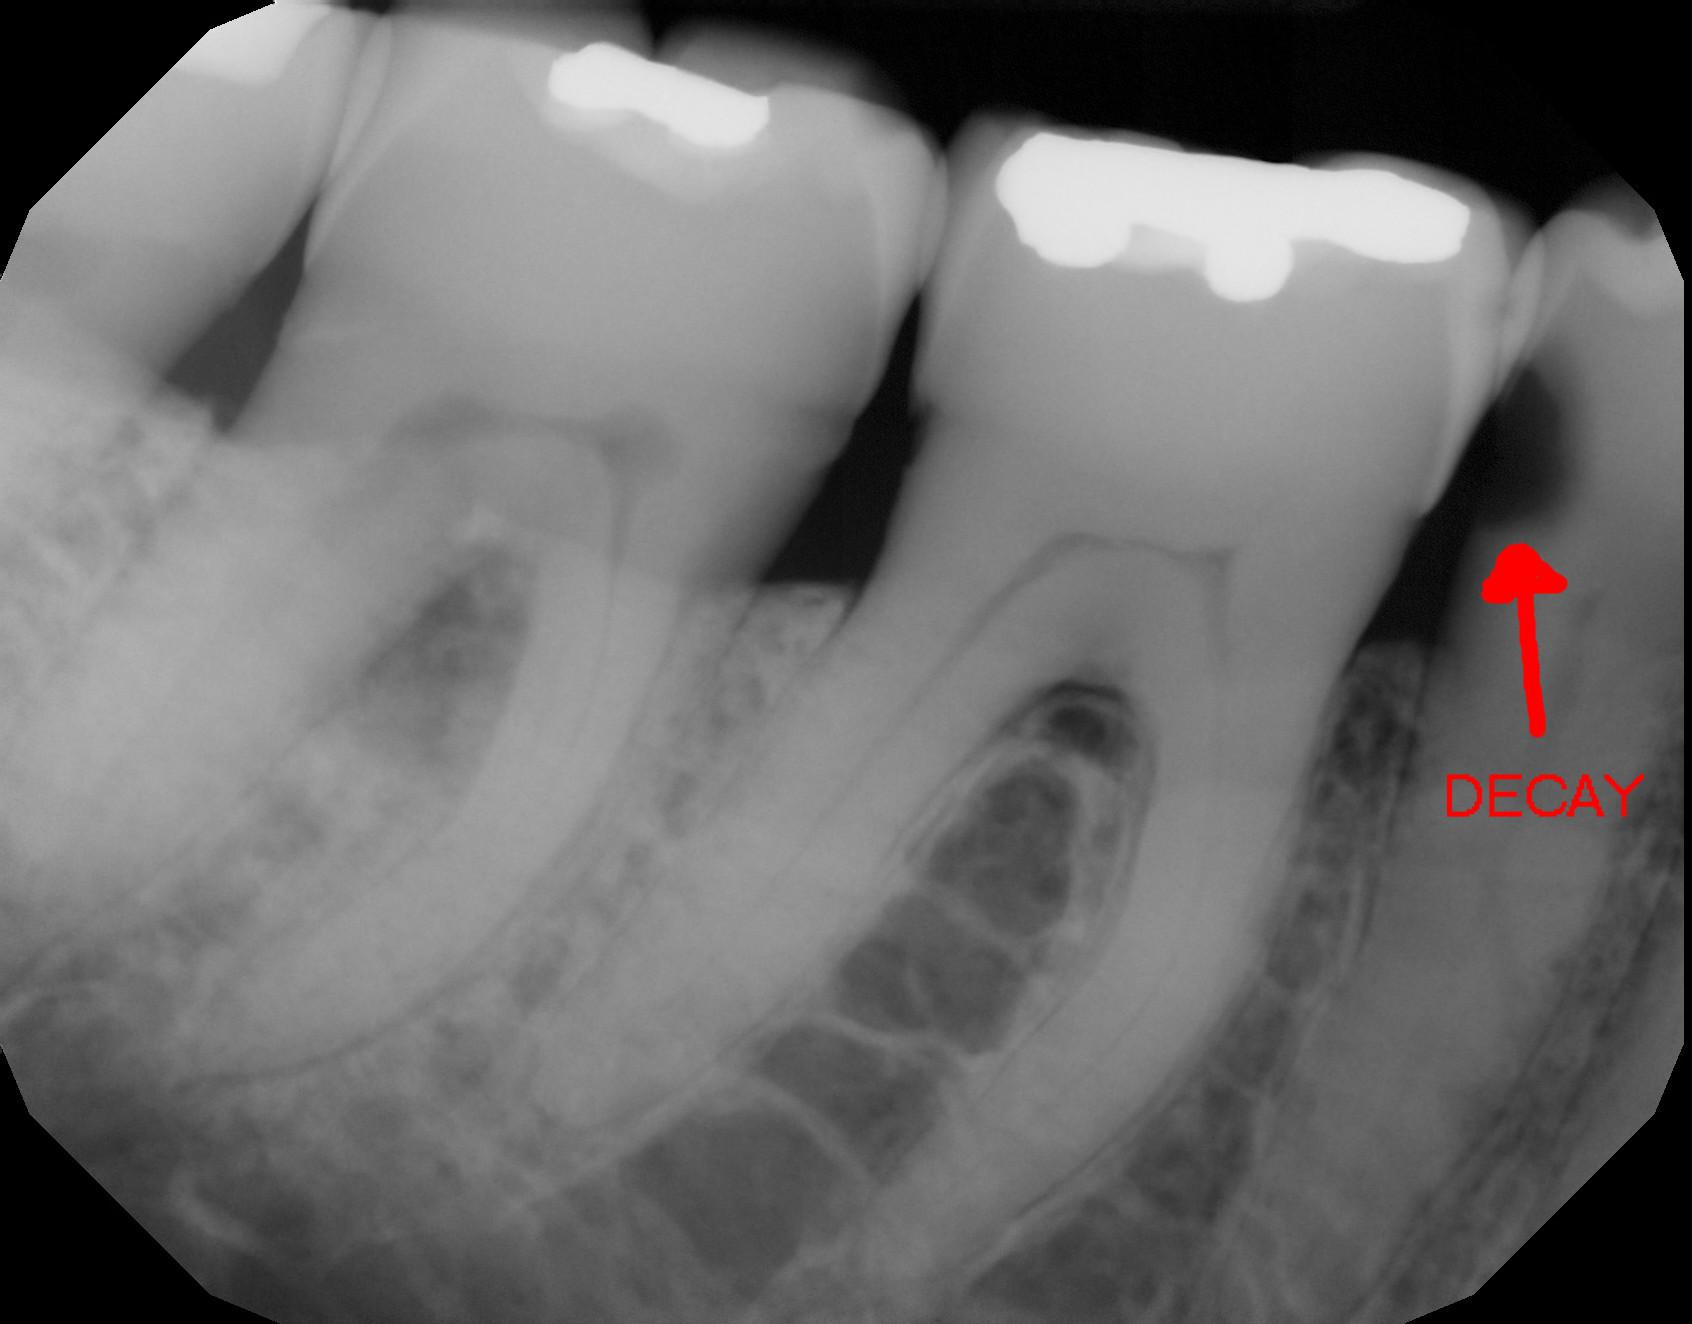 x-ray of a tooth showing decay.